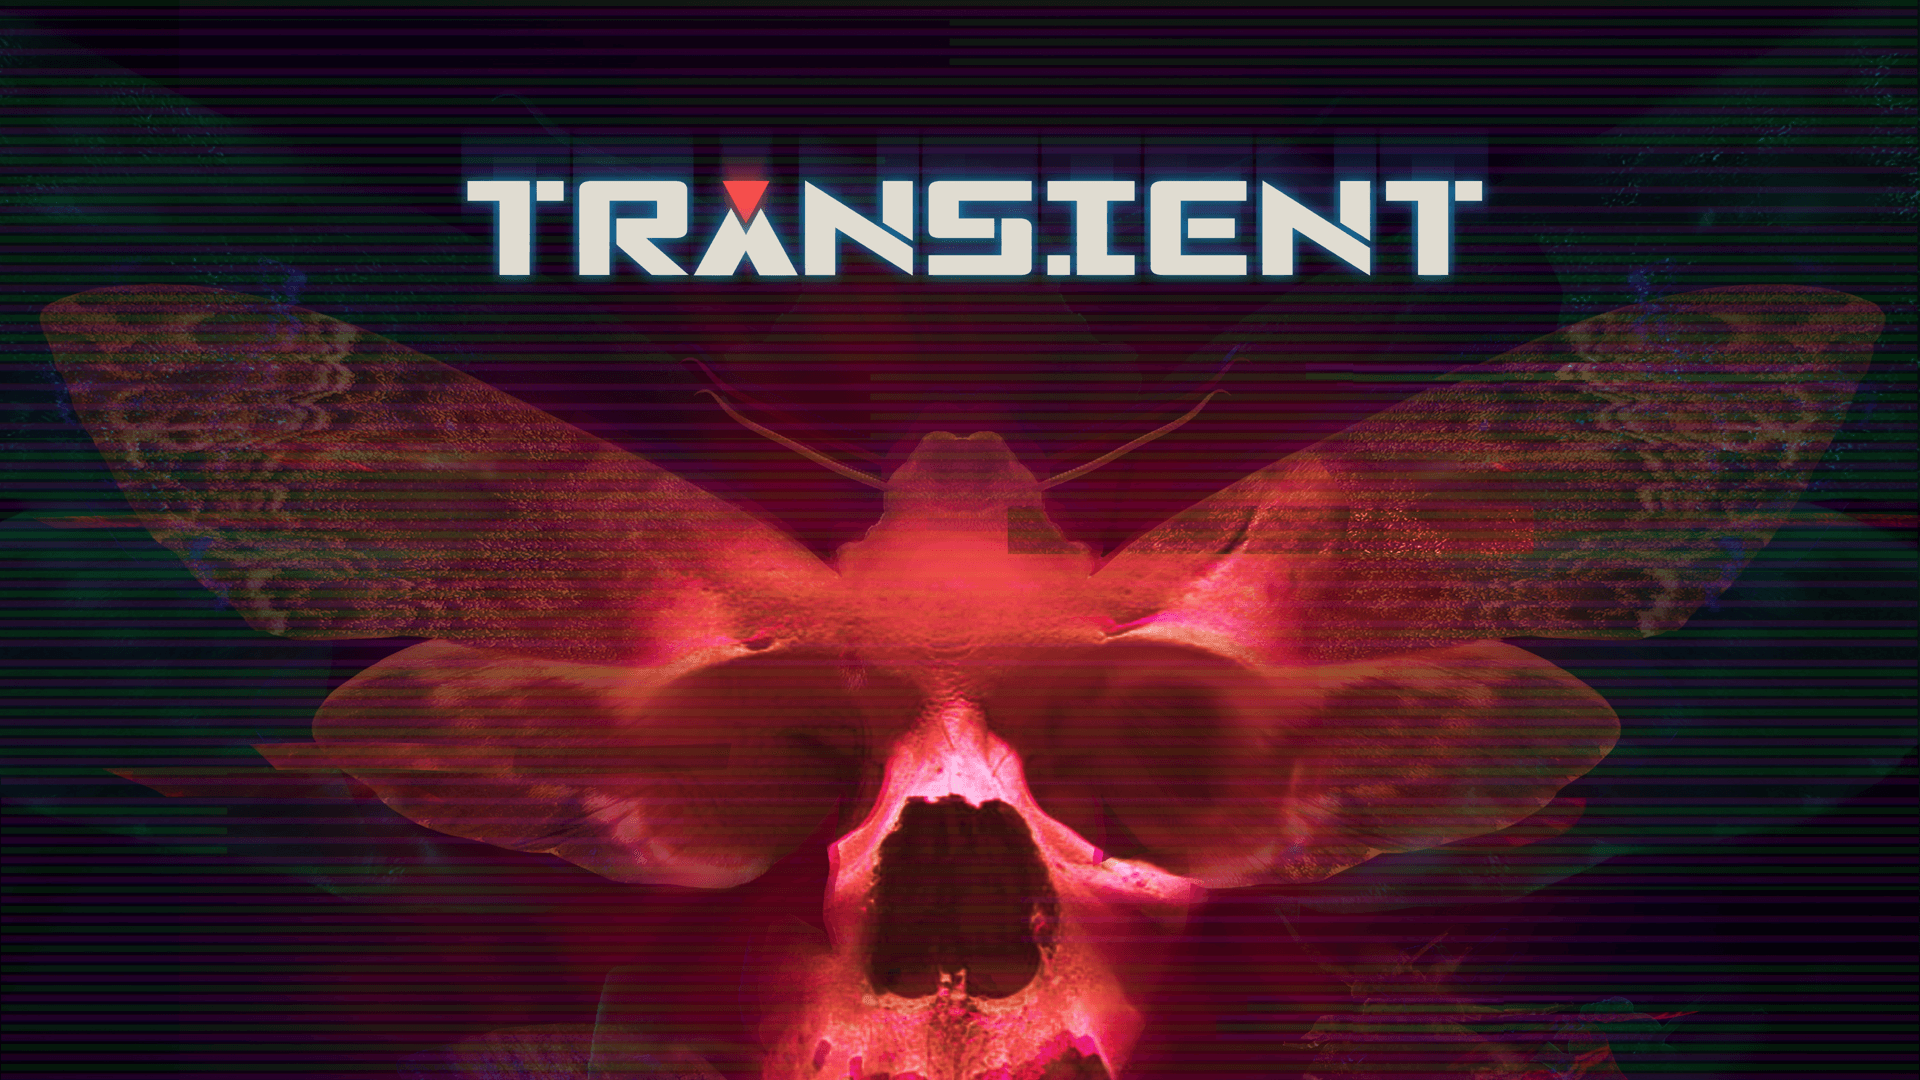 Transient, a Cyberpunk Horror Title, is Out Now for PC